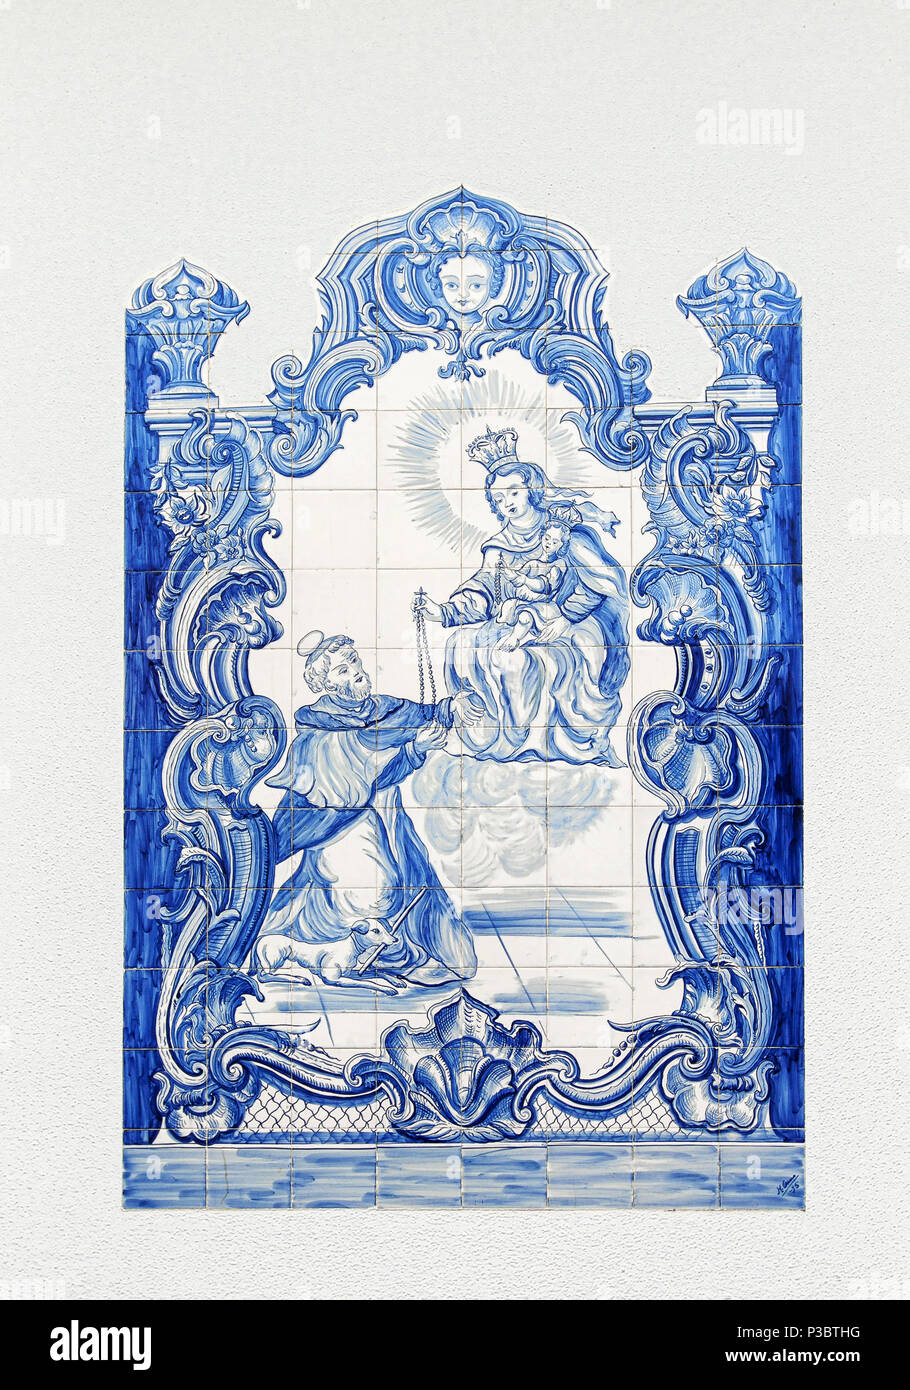 Traditional Portuguese blue and white painted tiles, called azulejos. - Stock Image